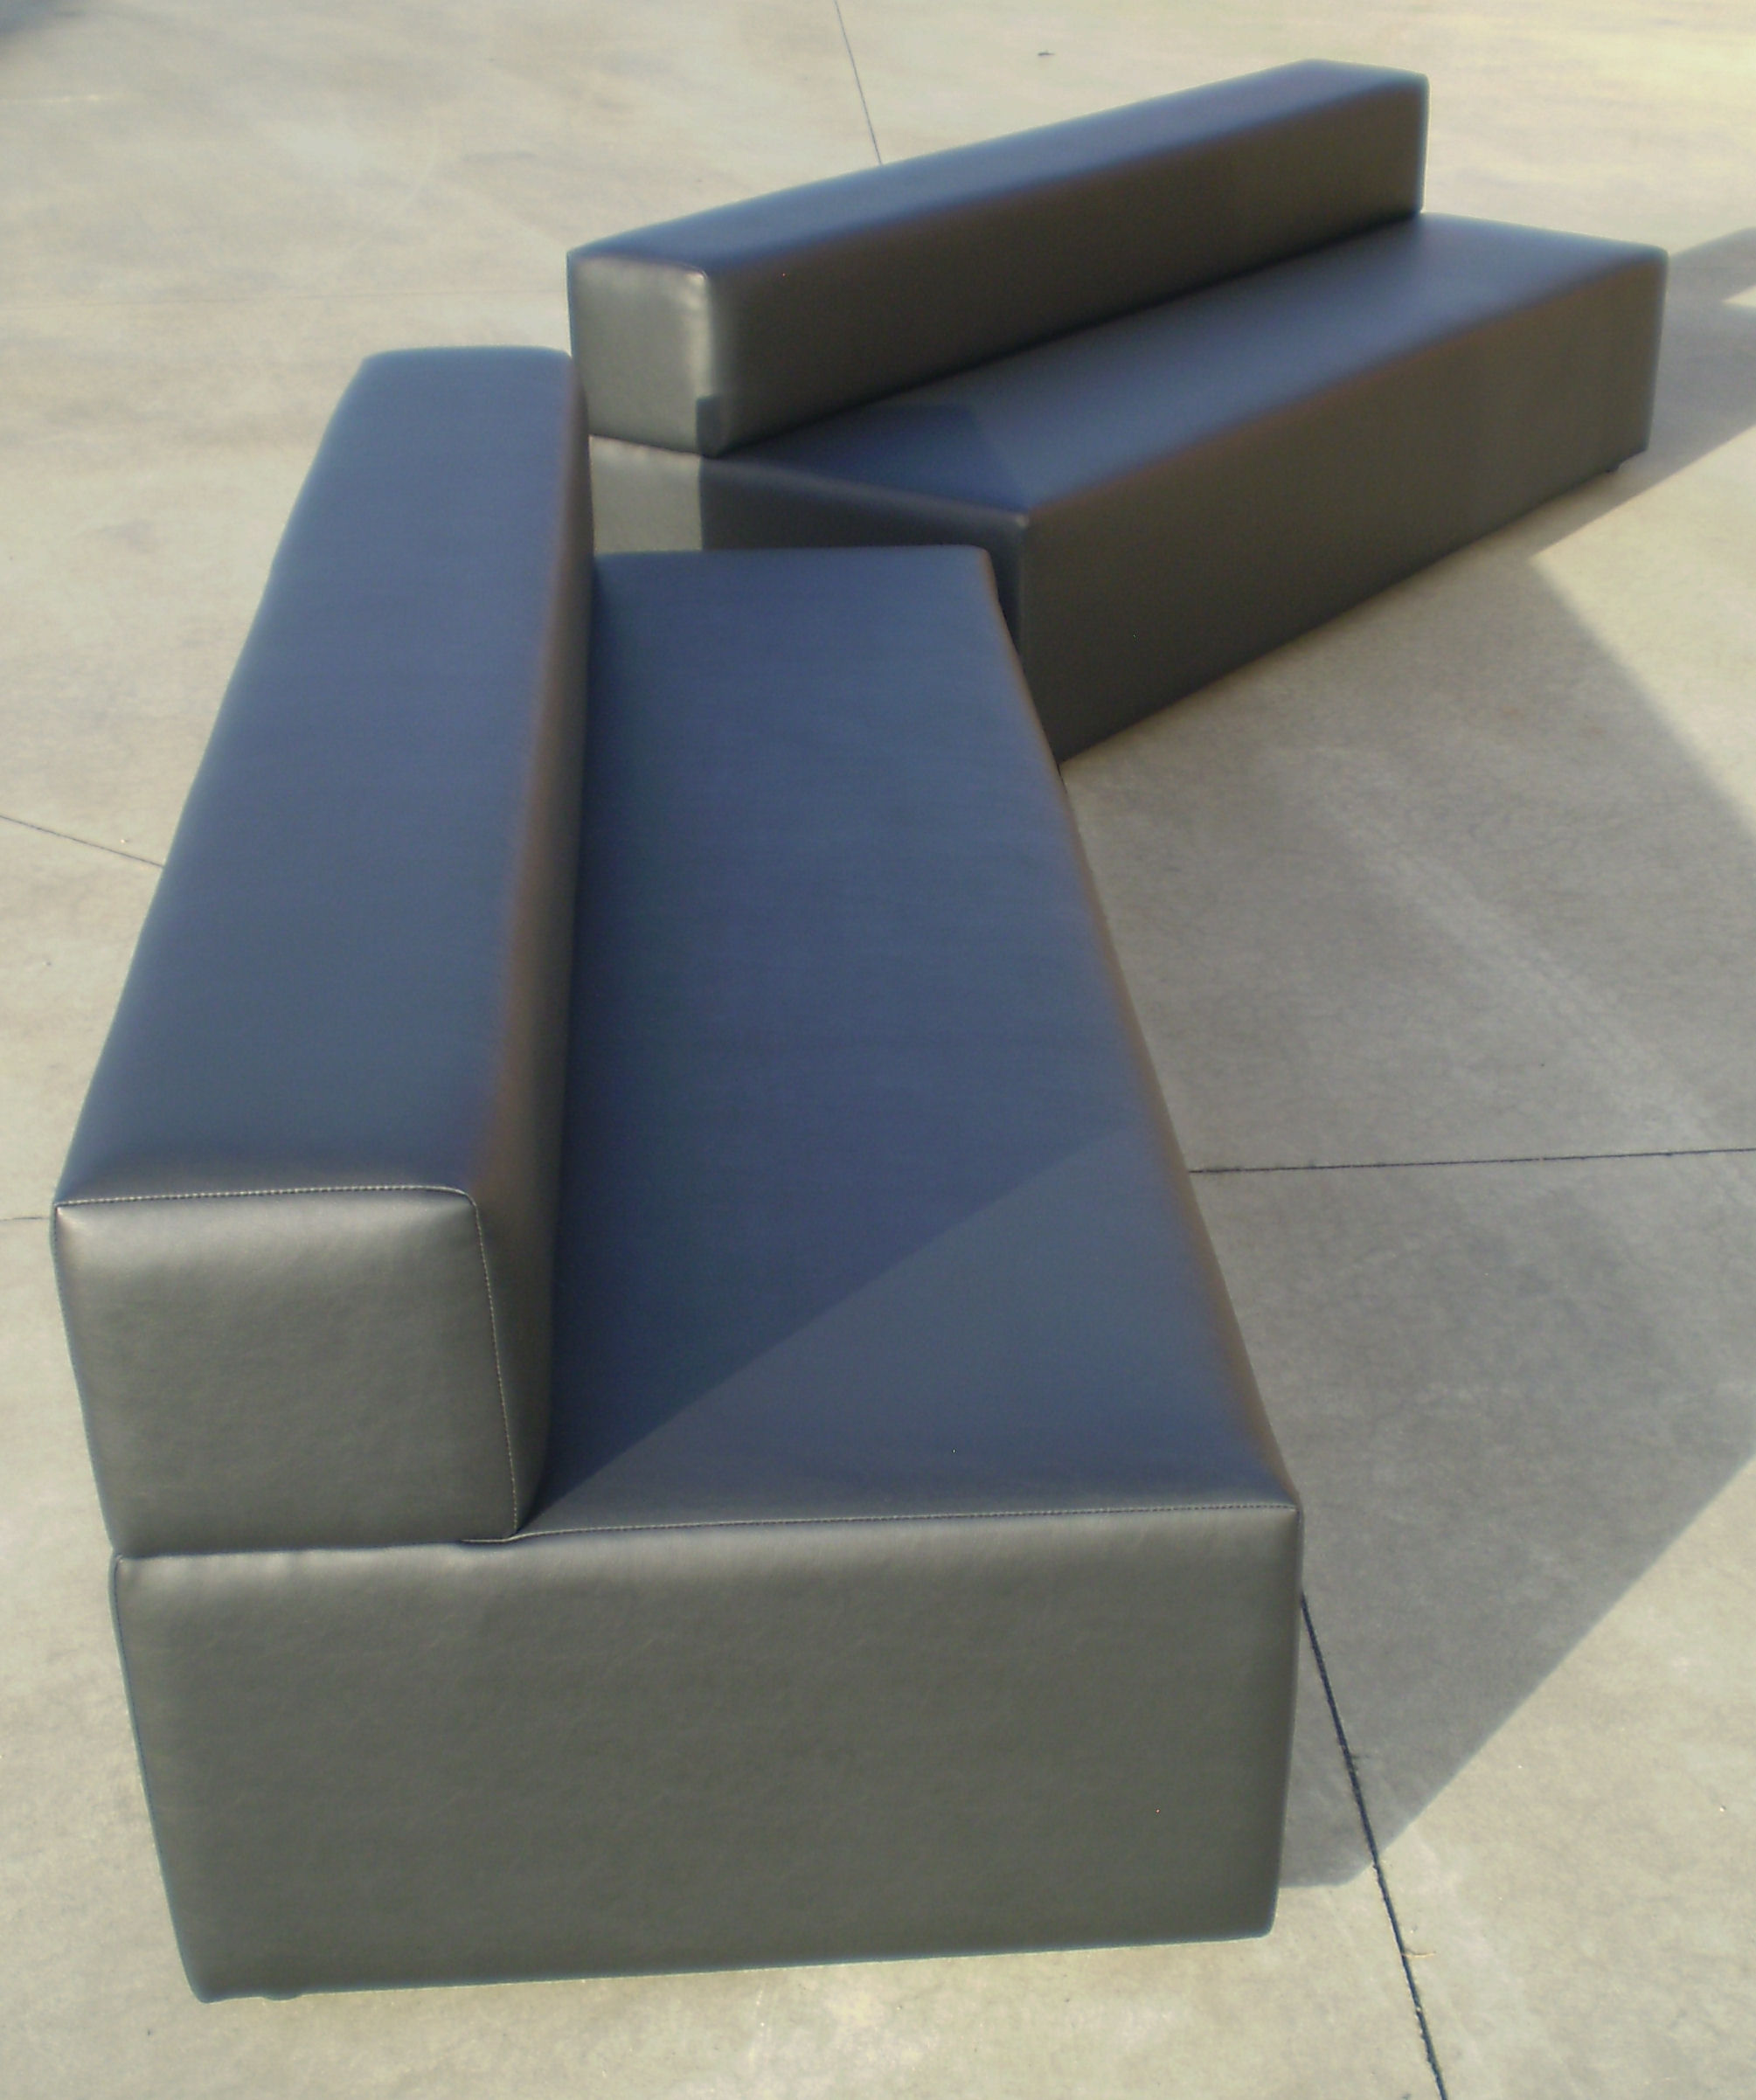 Stylish Night Club Banquette Seats, Many Styles Available